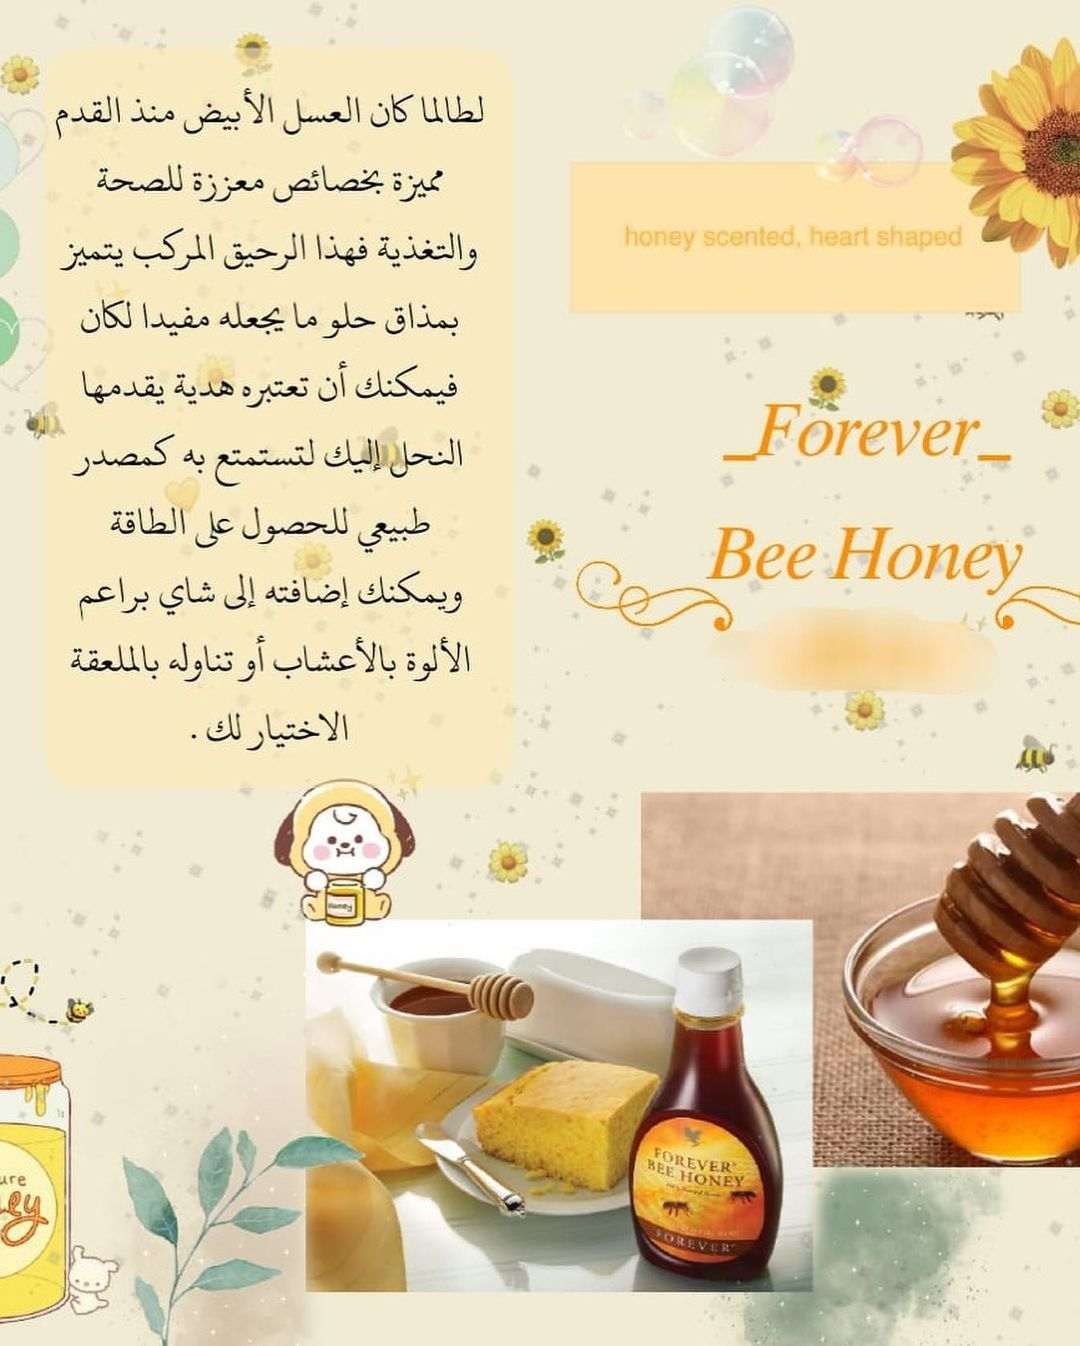 Pin By Nana On Forever Living Products فوريفر فورايفر Forever Living Products Aloe Vera Aloe